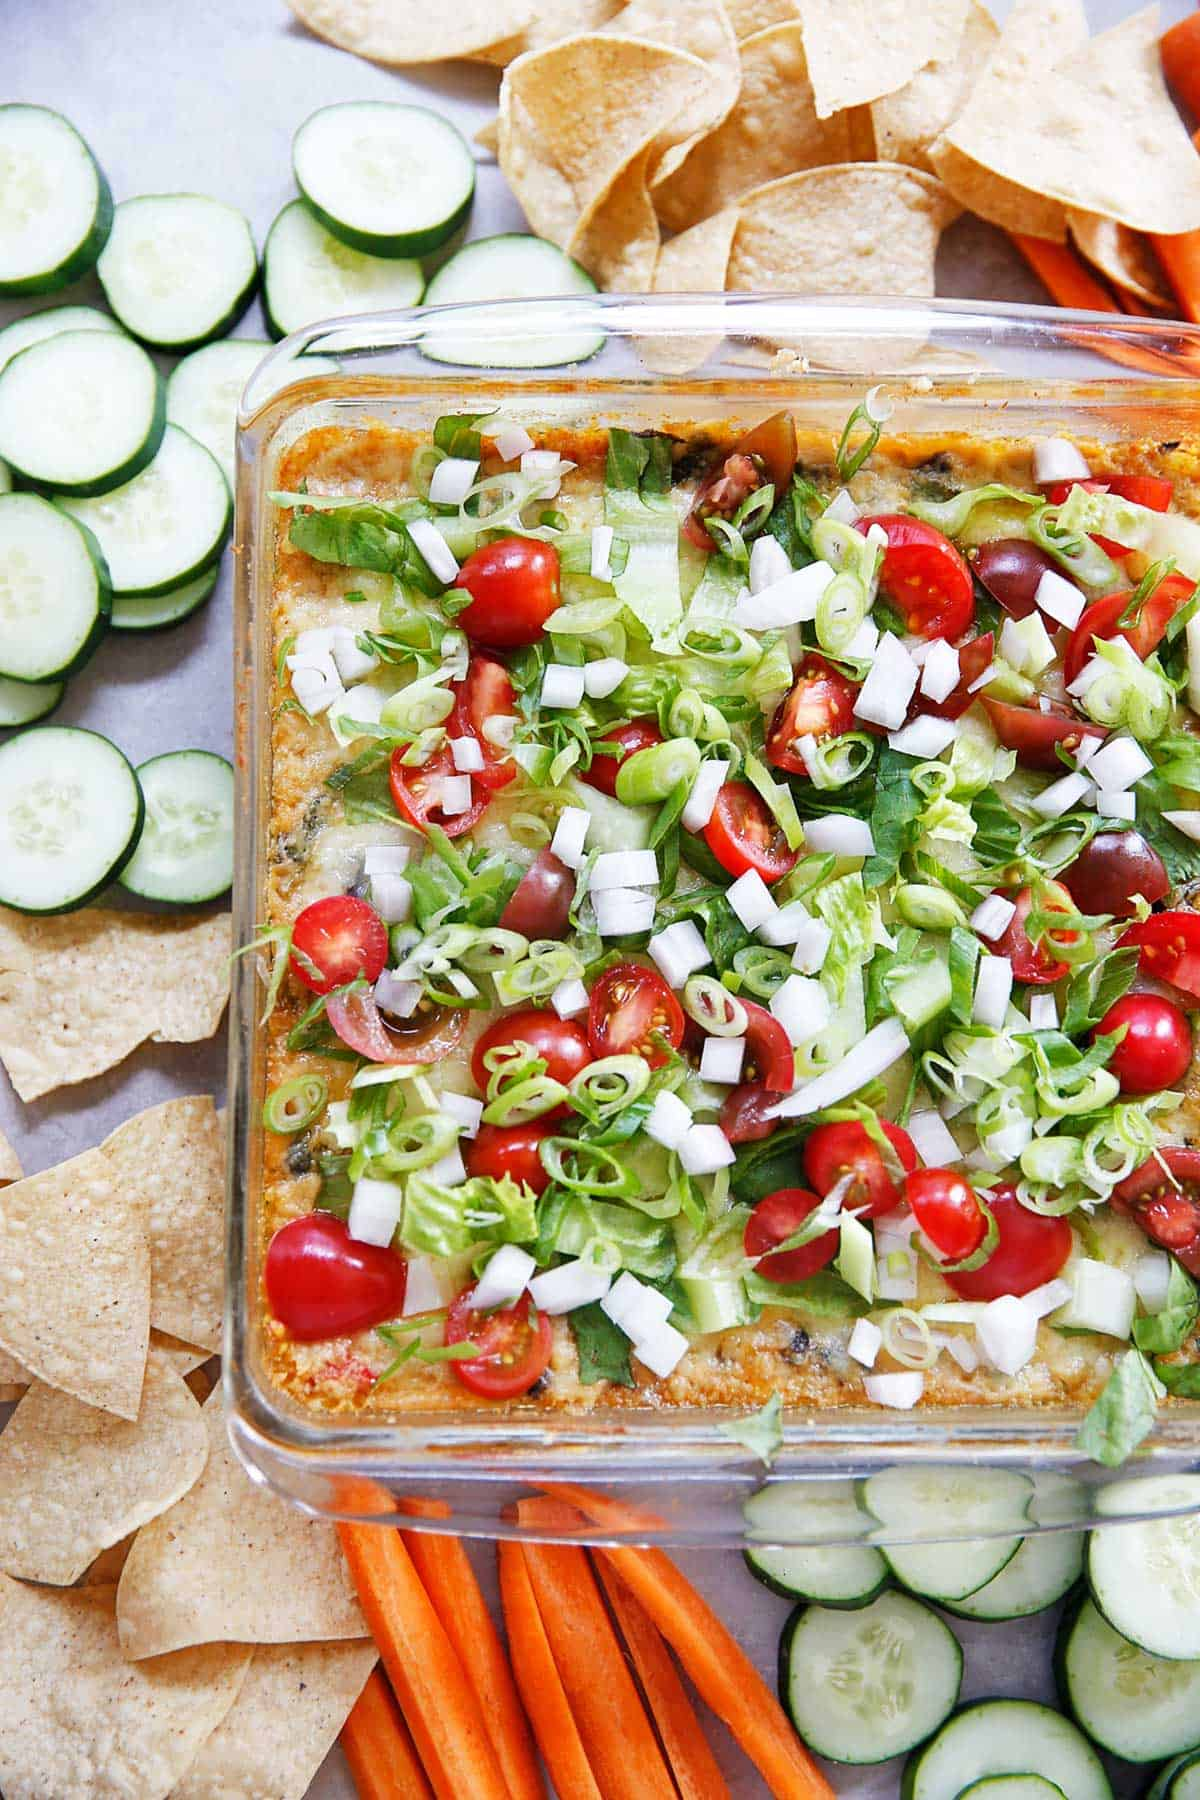 Southwest hummus with toppings in a baking dish